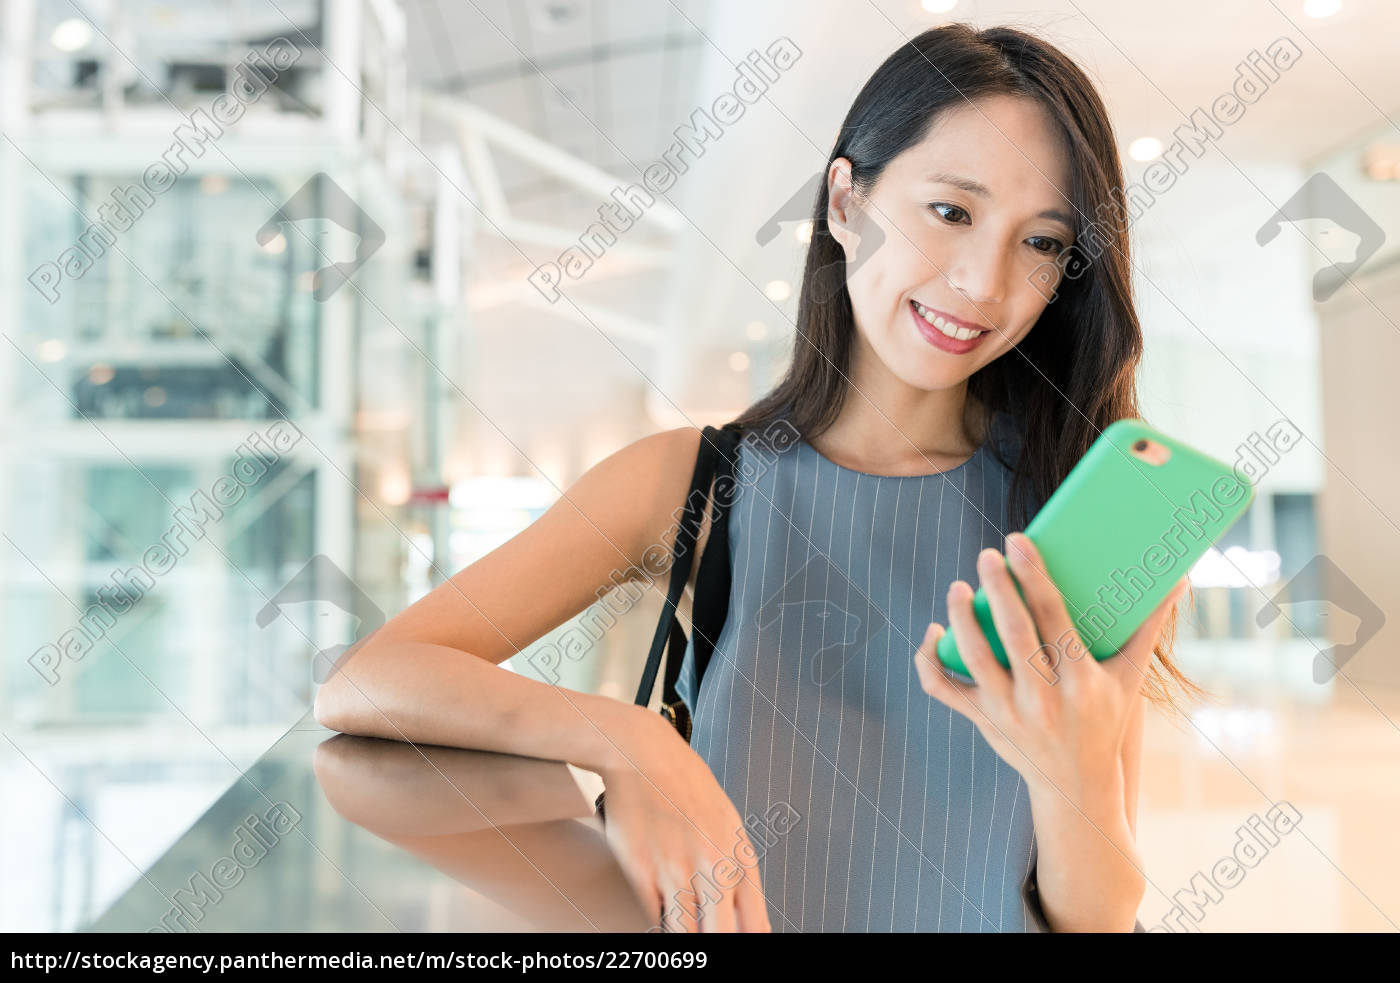 woman, holding, cellphone, in, shopping, mall - 22700699